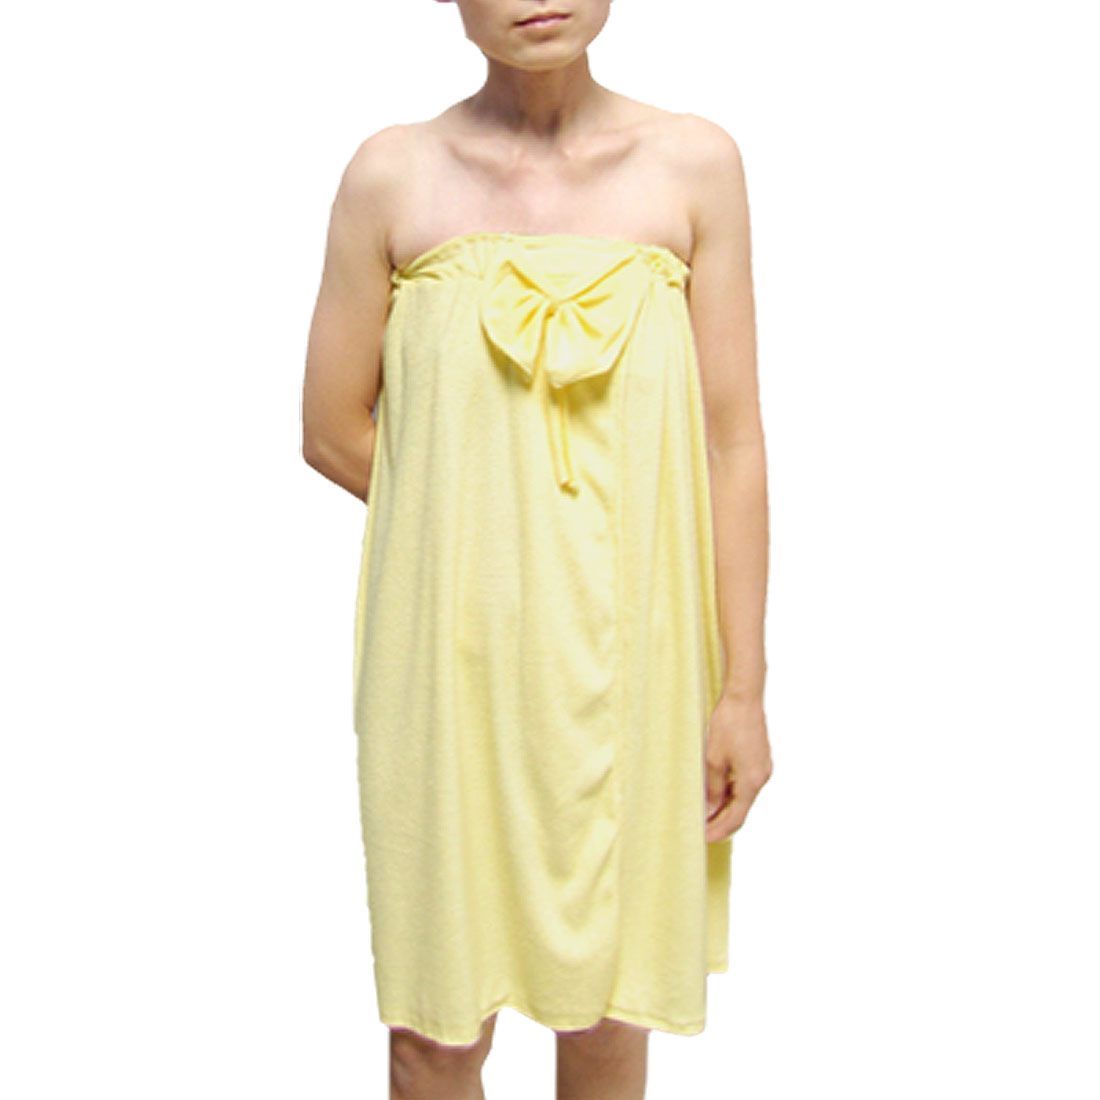 SPA Body Shower Terry Wrap Towel Bathrobe Yellow for Girl